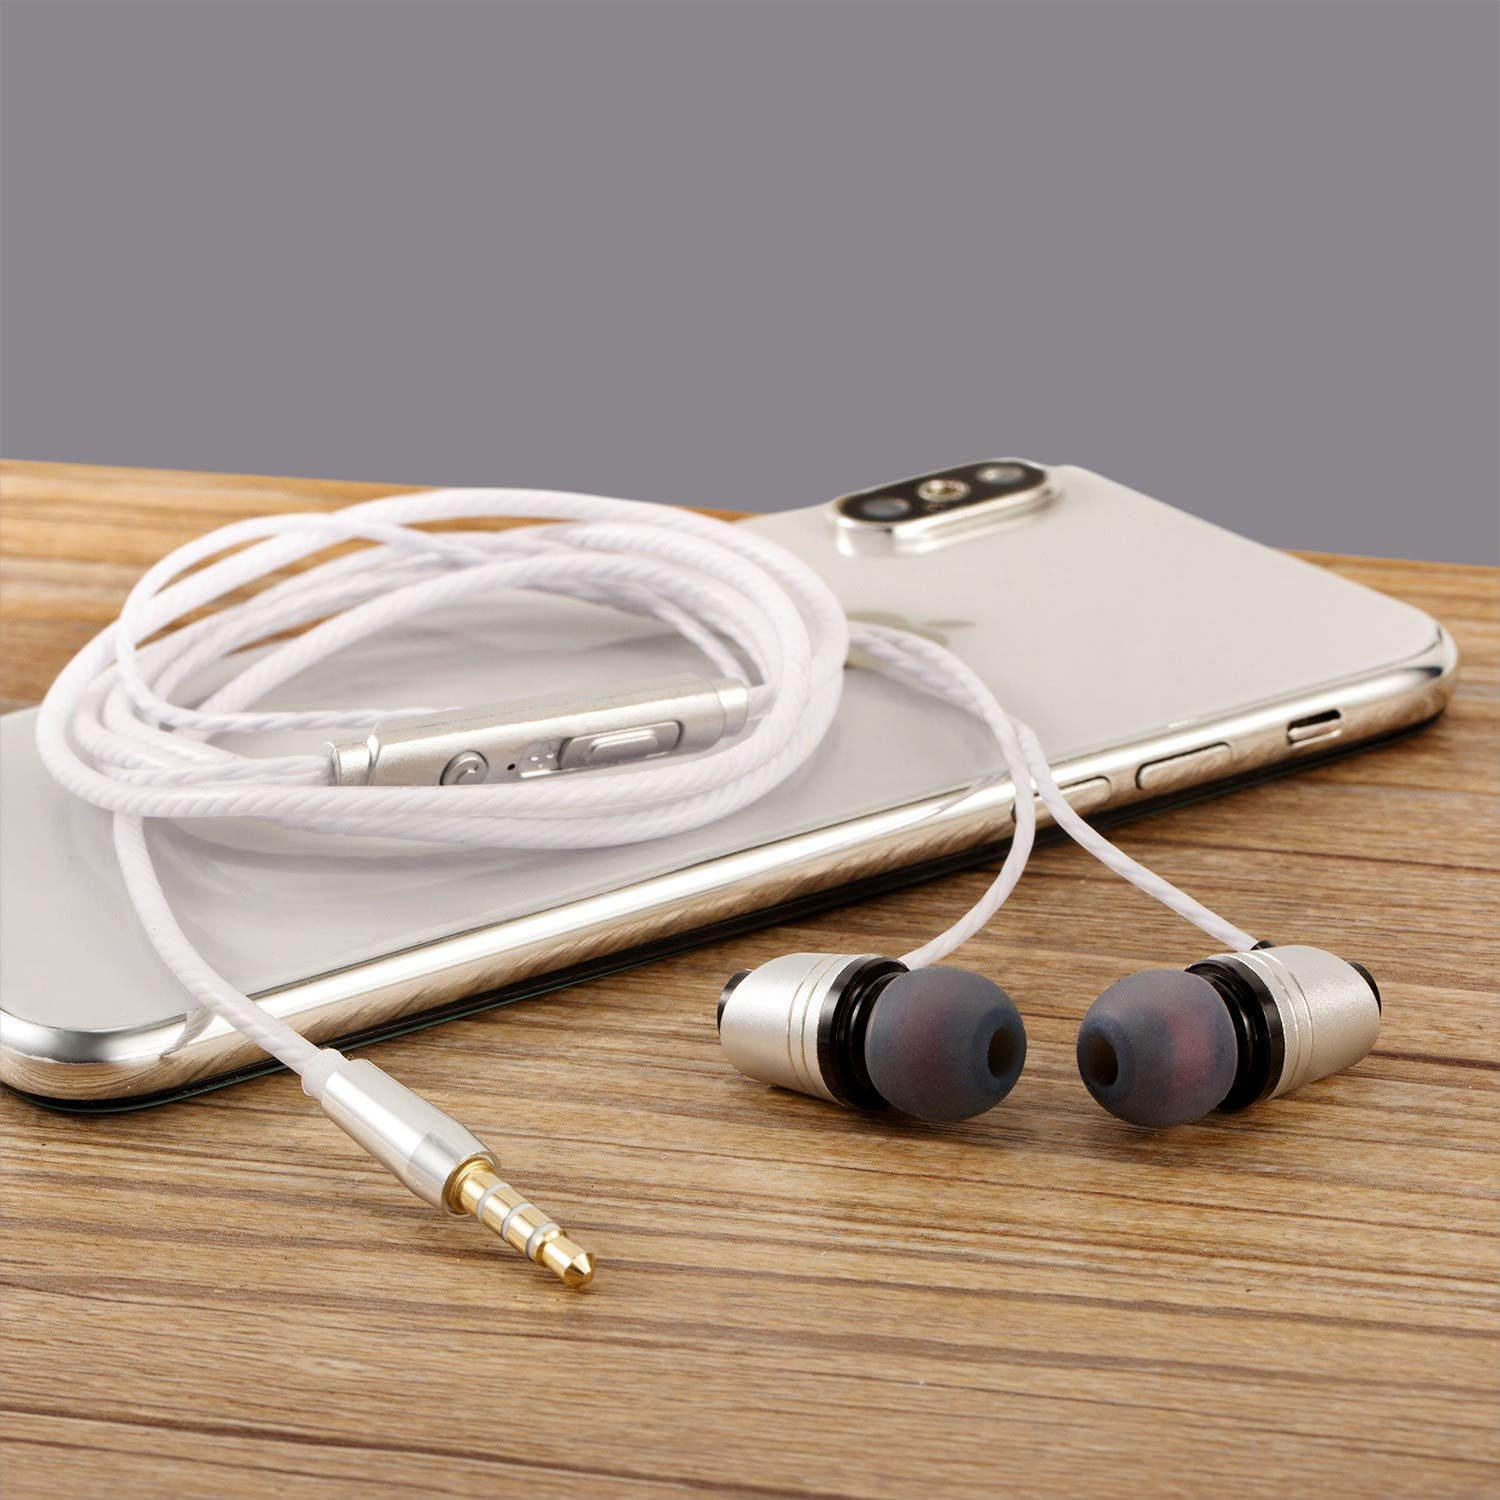 Wireless Bluetooth Headset Wireless Earbuds Sweatproof Sports Headphones with Charging Case Mini Size in-Ear Noise Earphon Phone Android Smart-10-26-5